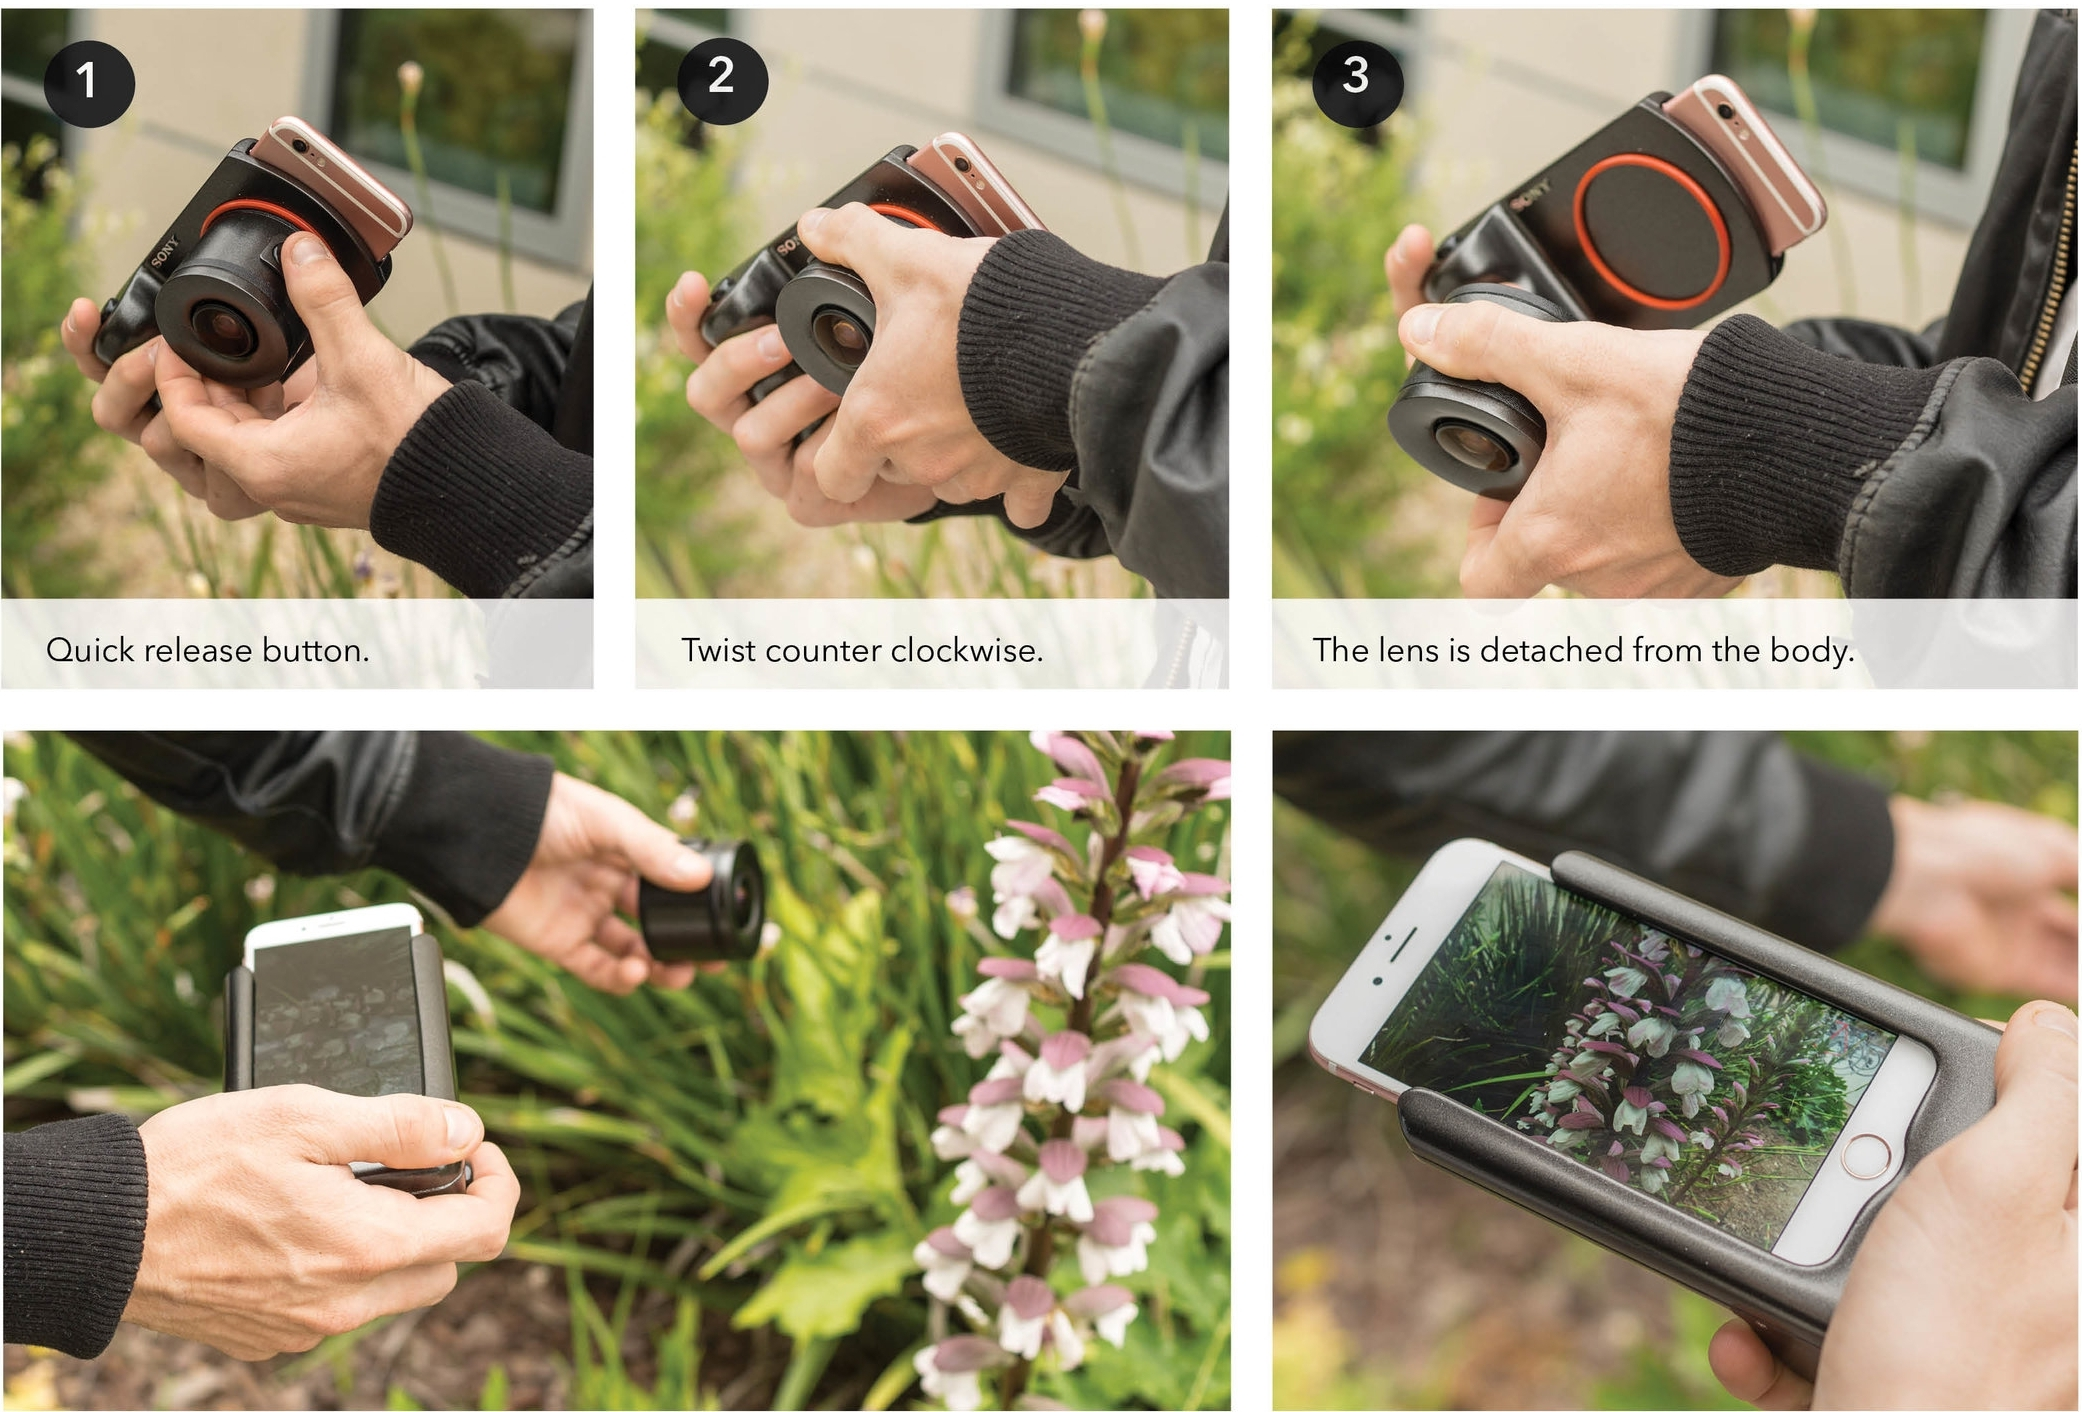 The design of the lens has a quick-release button where the user pushes and holds on to the button. Once they twisted in counter-clockwise motion the lens will detach from the body. Next, they can move the lens around and the phone screen is acting as a view-finder.